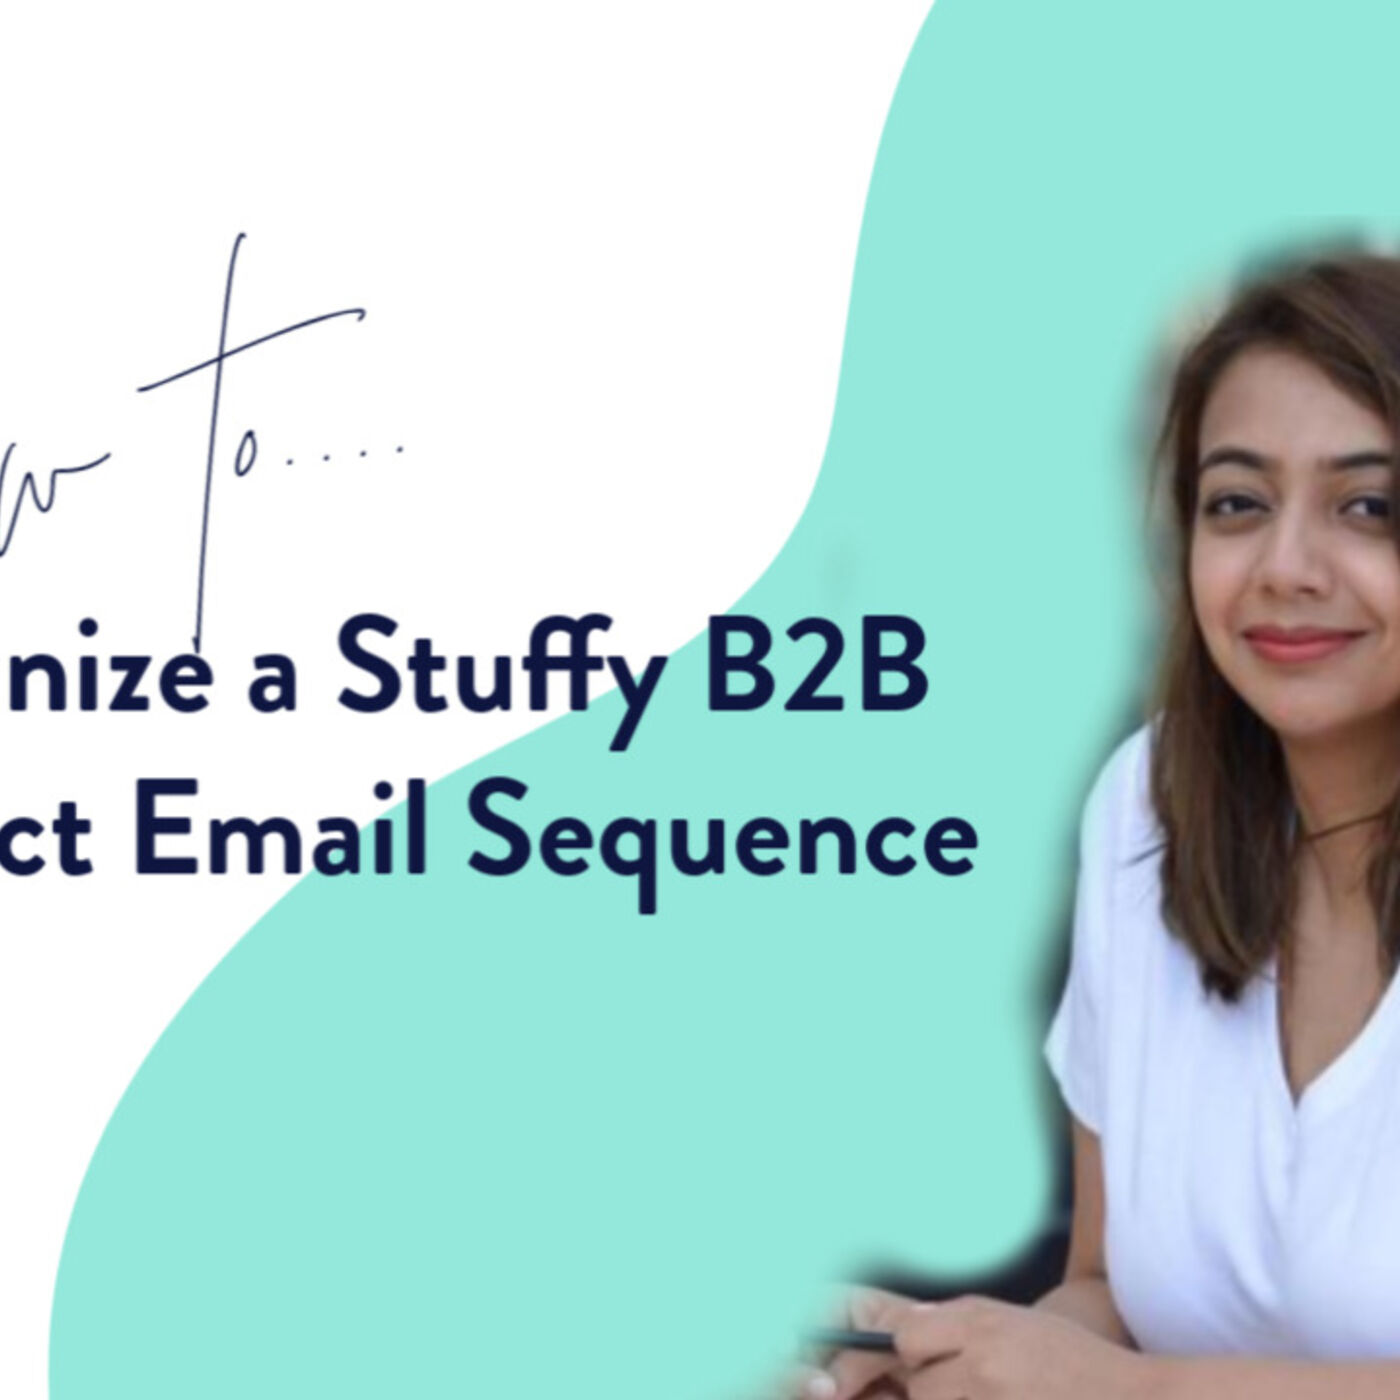 How to Humanize a Stuffy B2B Product Email Sequence